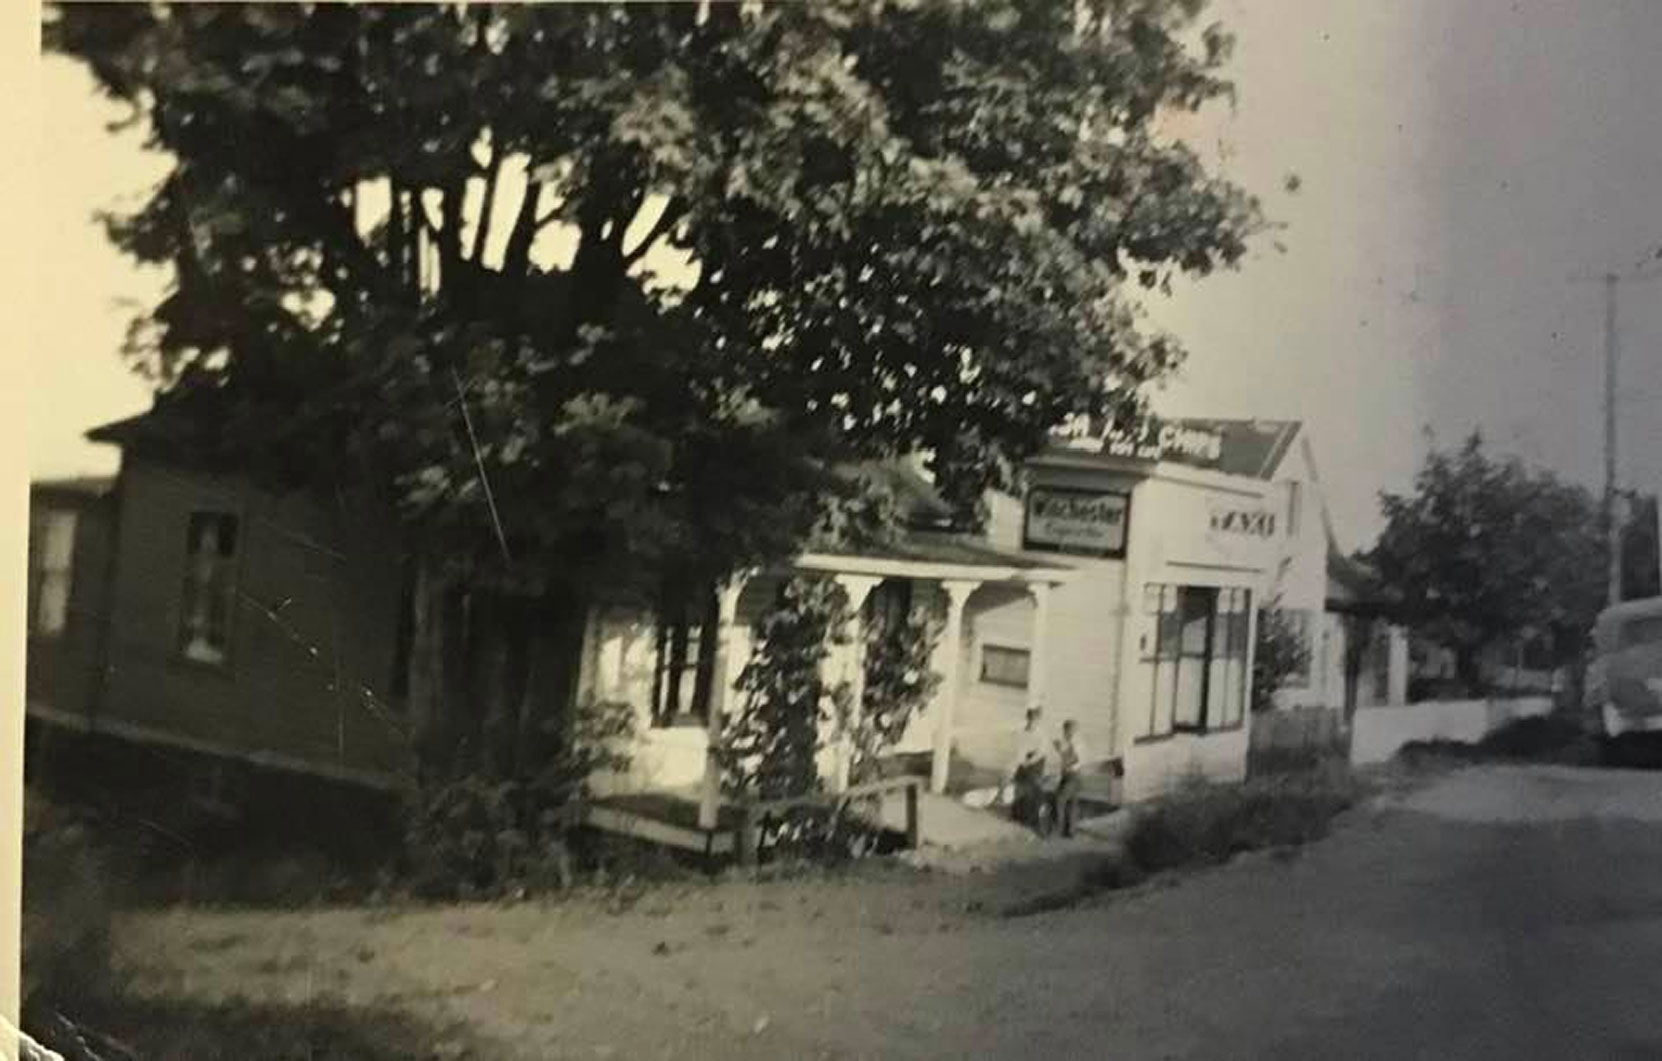 321 1st Avenue (left), 317 1st Avenue (center), 315 1st Avenue (right), 1946. 317 1st Avenue was occupied by a taxi business. 321 1st Avenue and 315 1st Avenue were private residences. (photo: Hilary Hansen, family photo - used with permission)